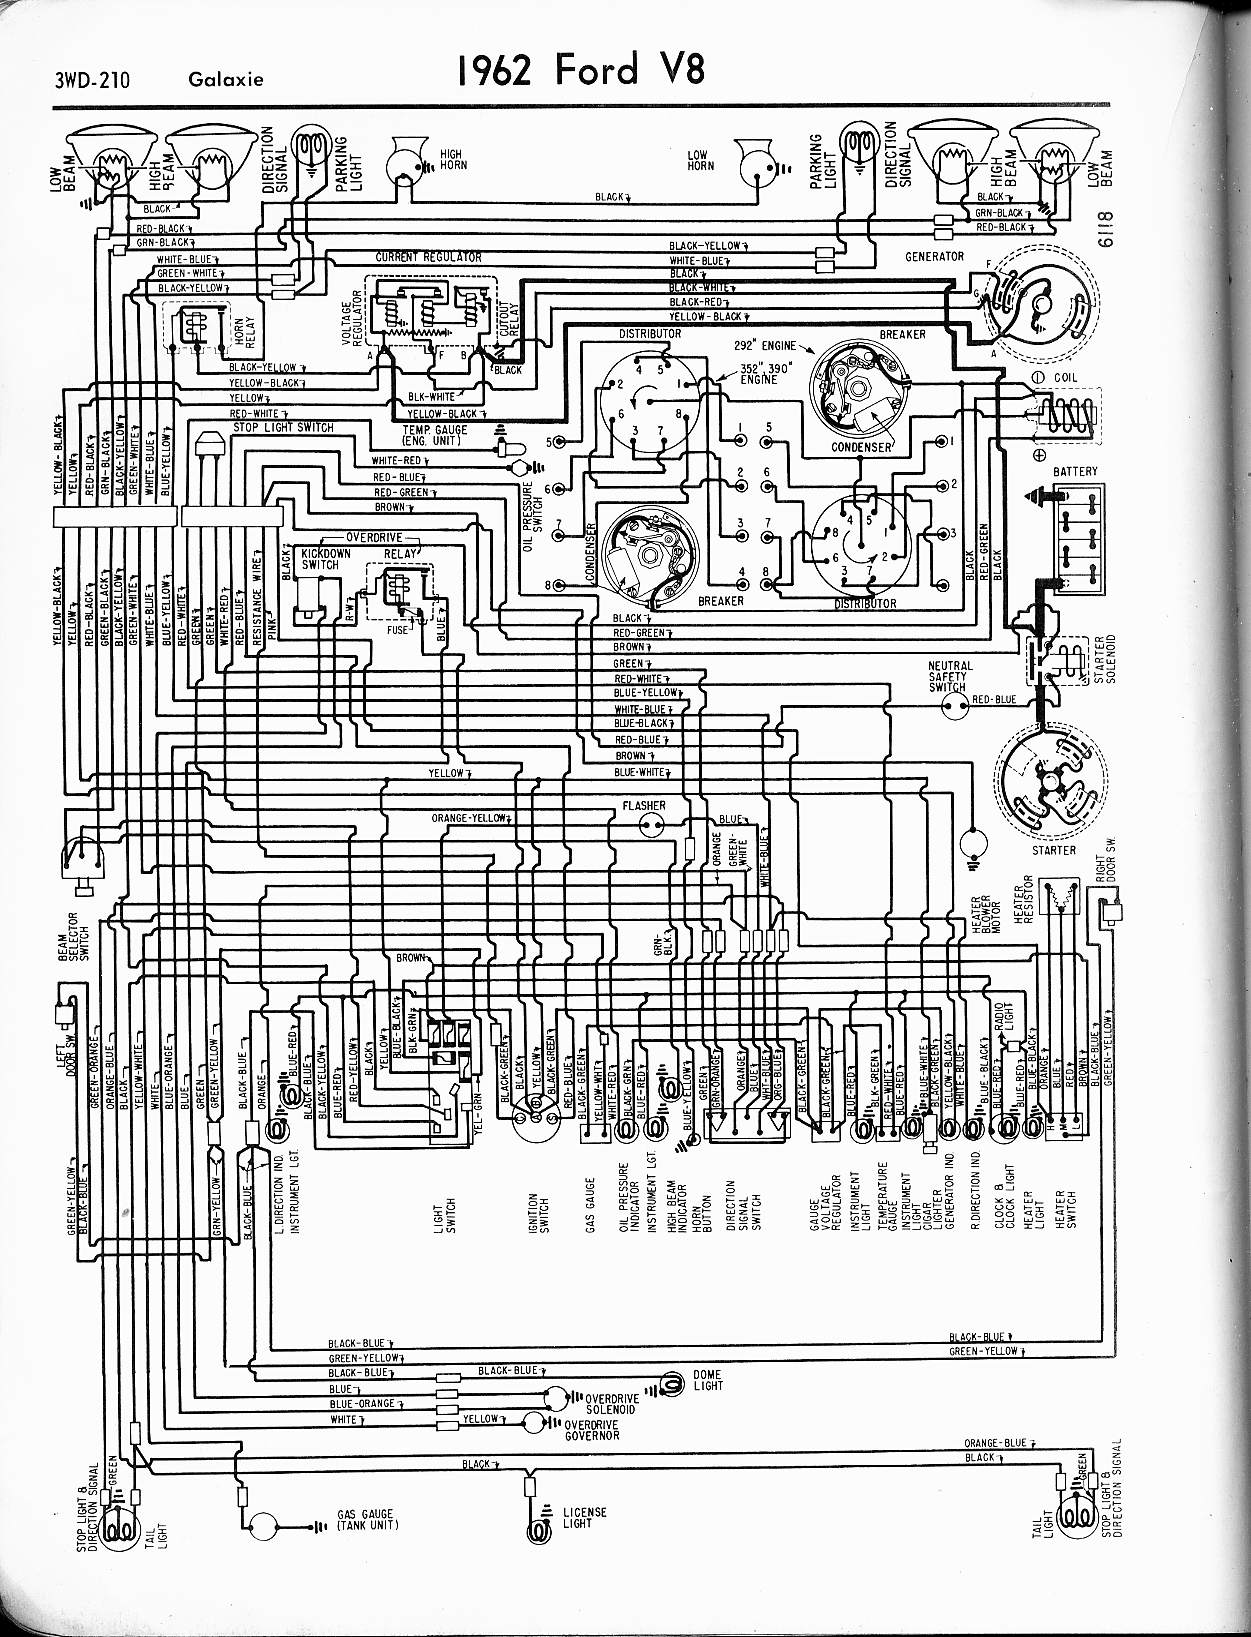 MWire5765 210 64 falcon wiring diagram 64 comet ignition wiring \u2022 wiring 1965 ford falcon wiring diagram at aneh.co